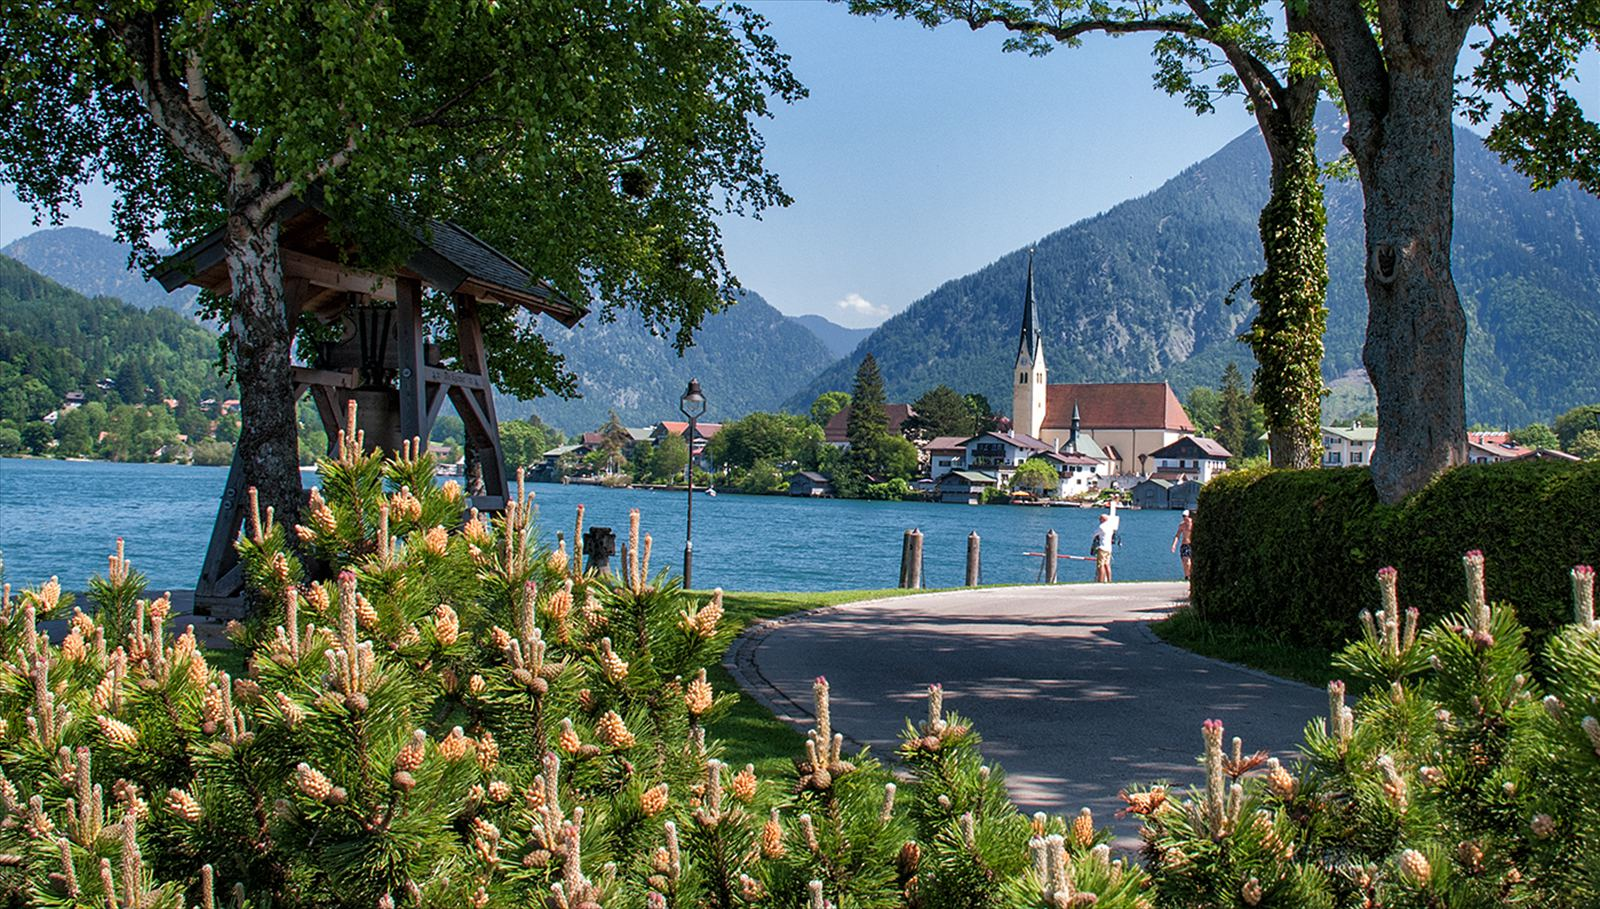 Der Webermohof in Rottach-Egern am Tegernsee - Copyright Gerlind Schiele Photography